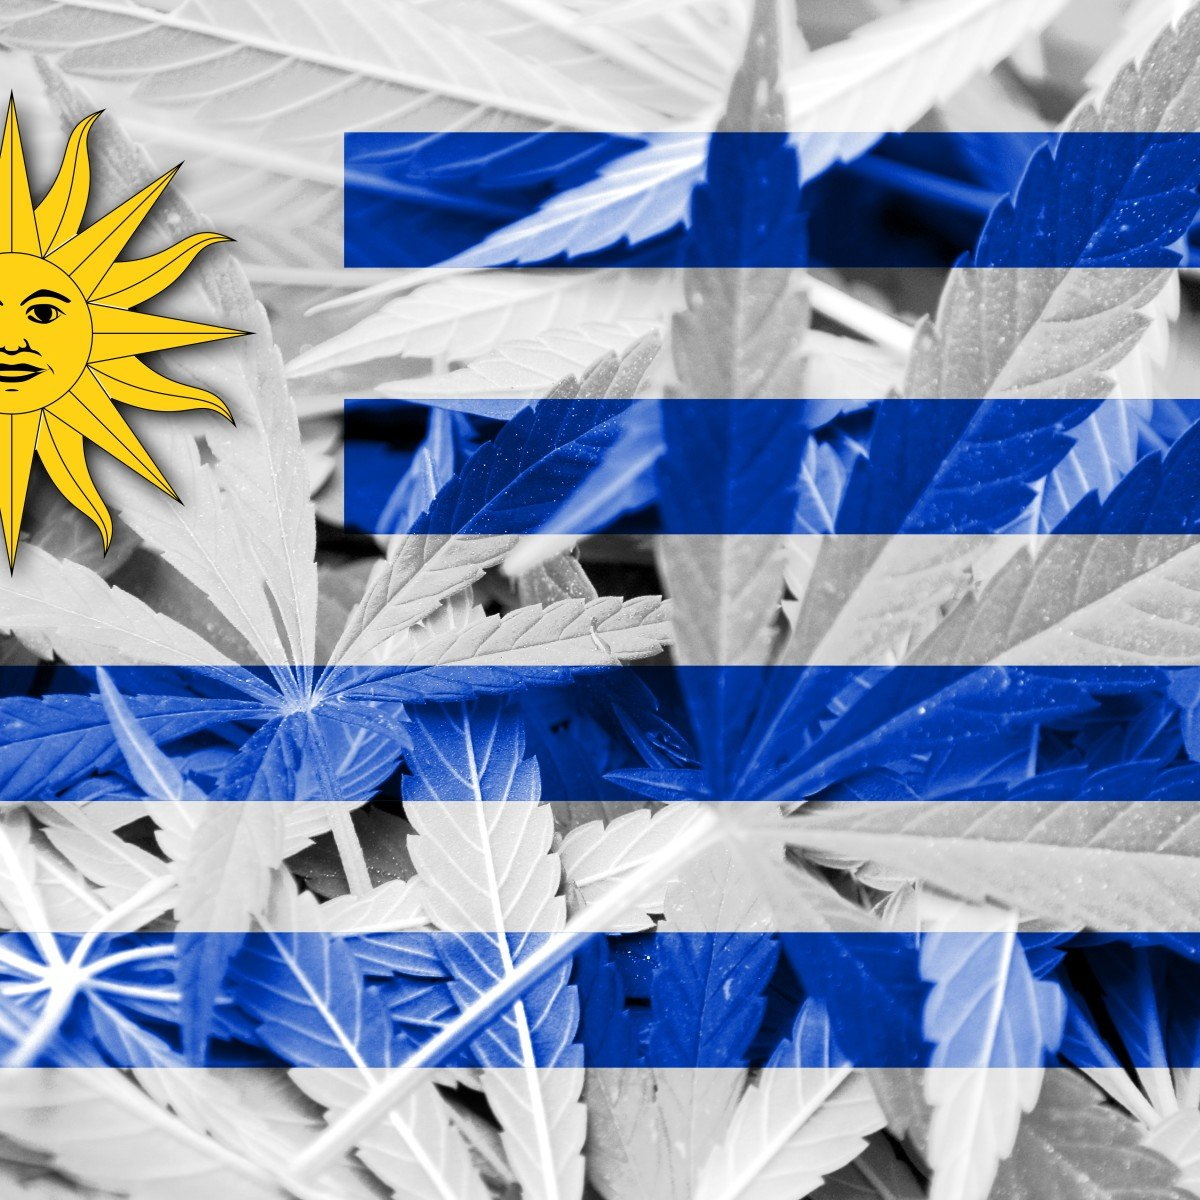 Uruguay legalized weed 6 years ago and experts say it's made the country better than ever